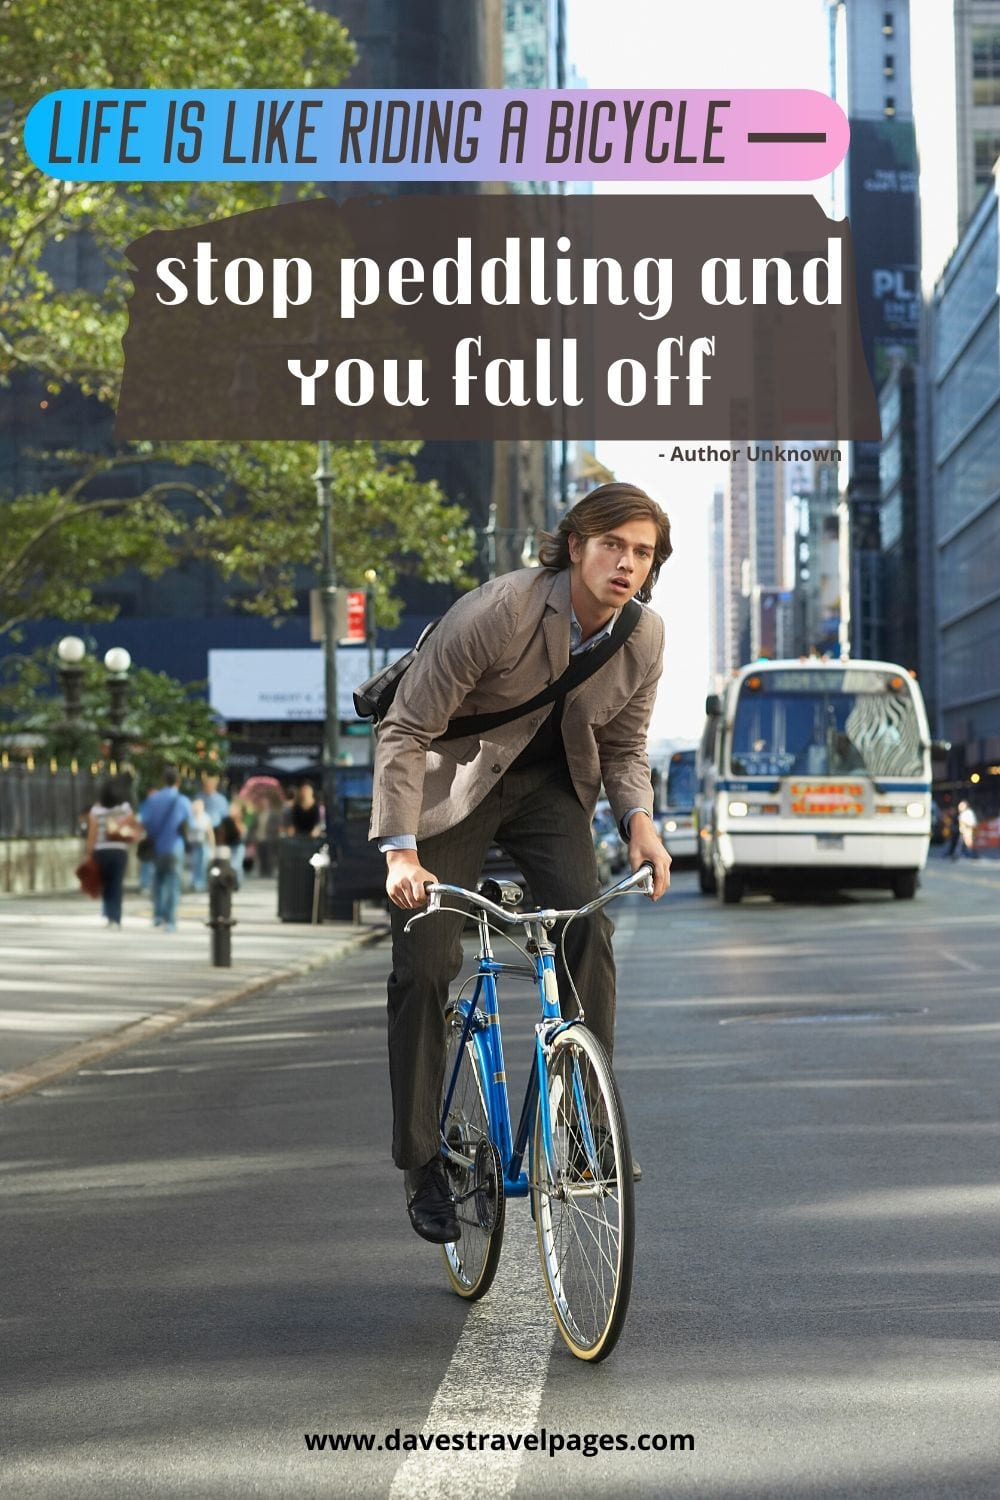 Life is like riding a bicycle — stop peddling and you fall off. ~Author Unknown